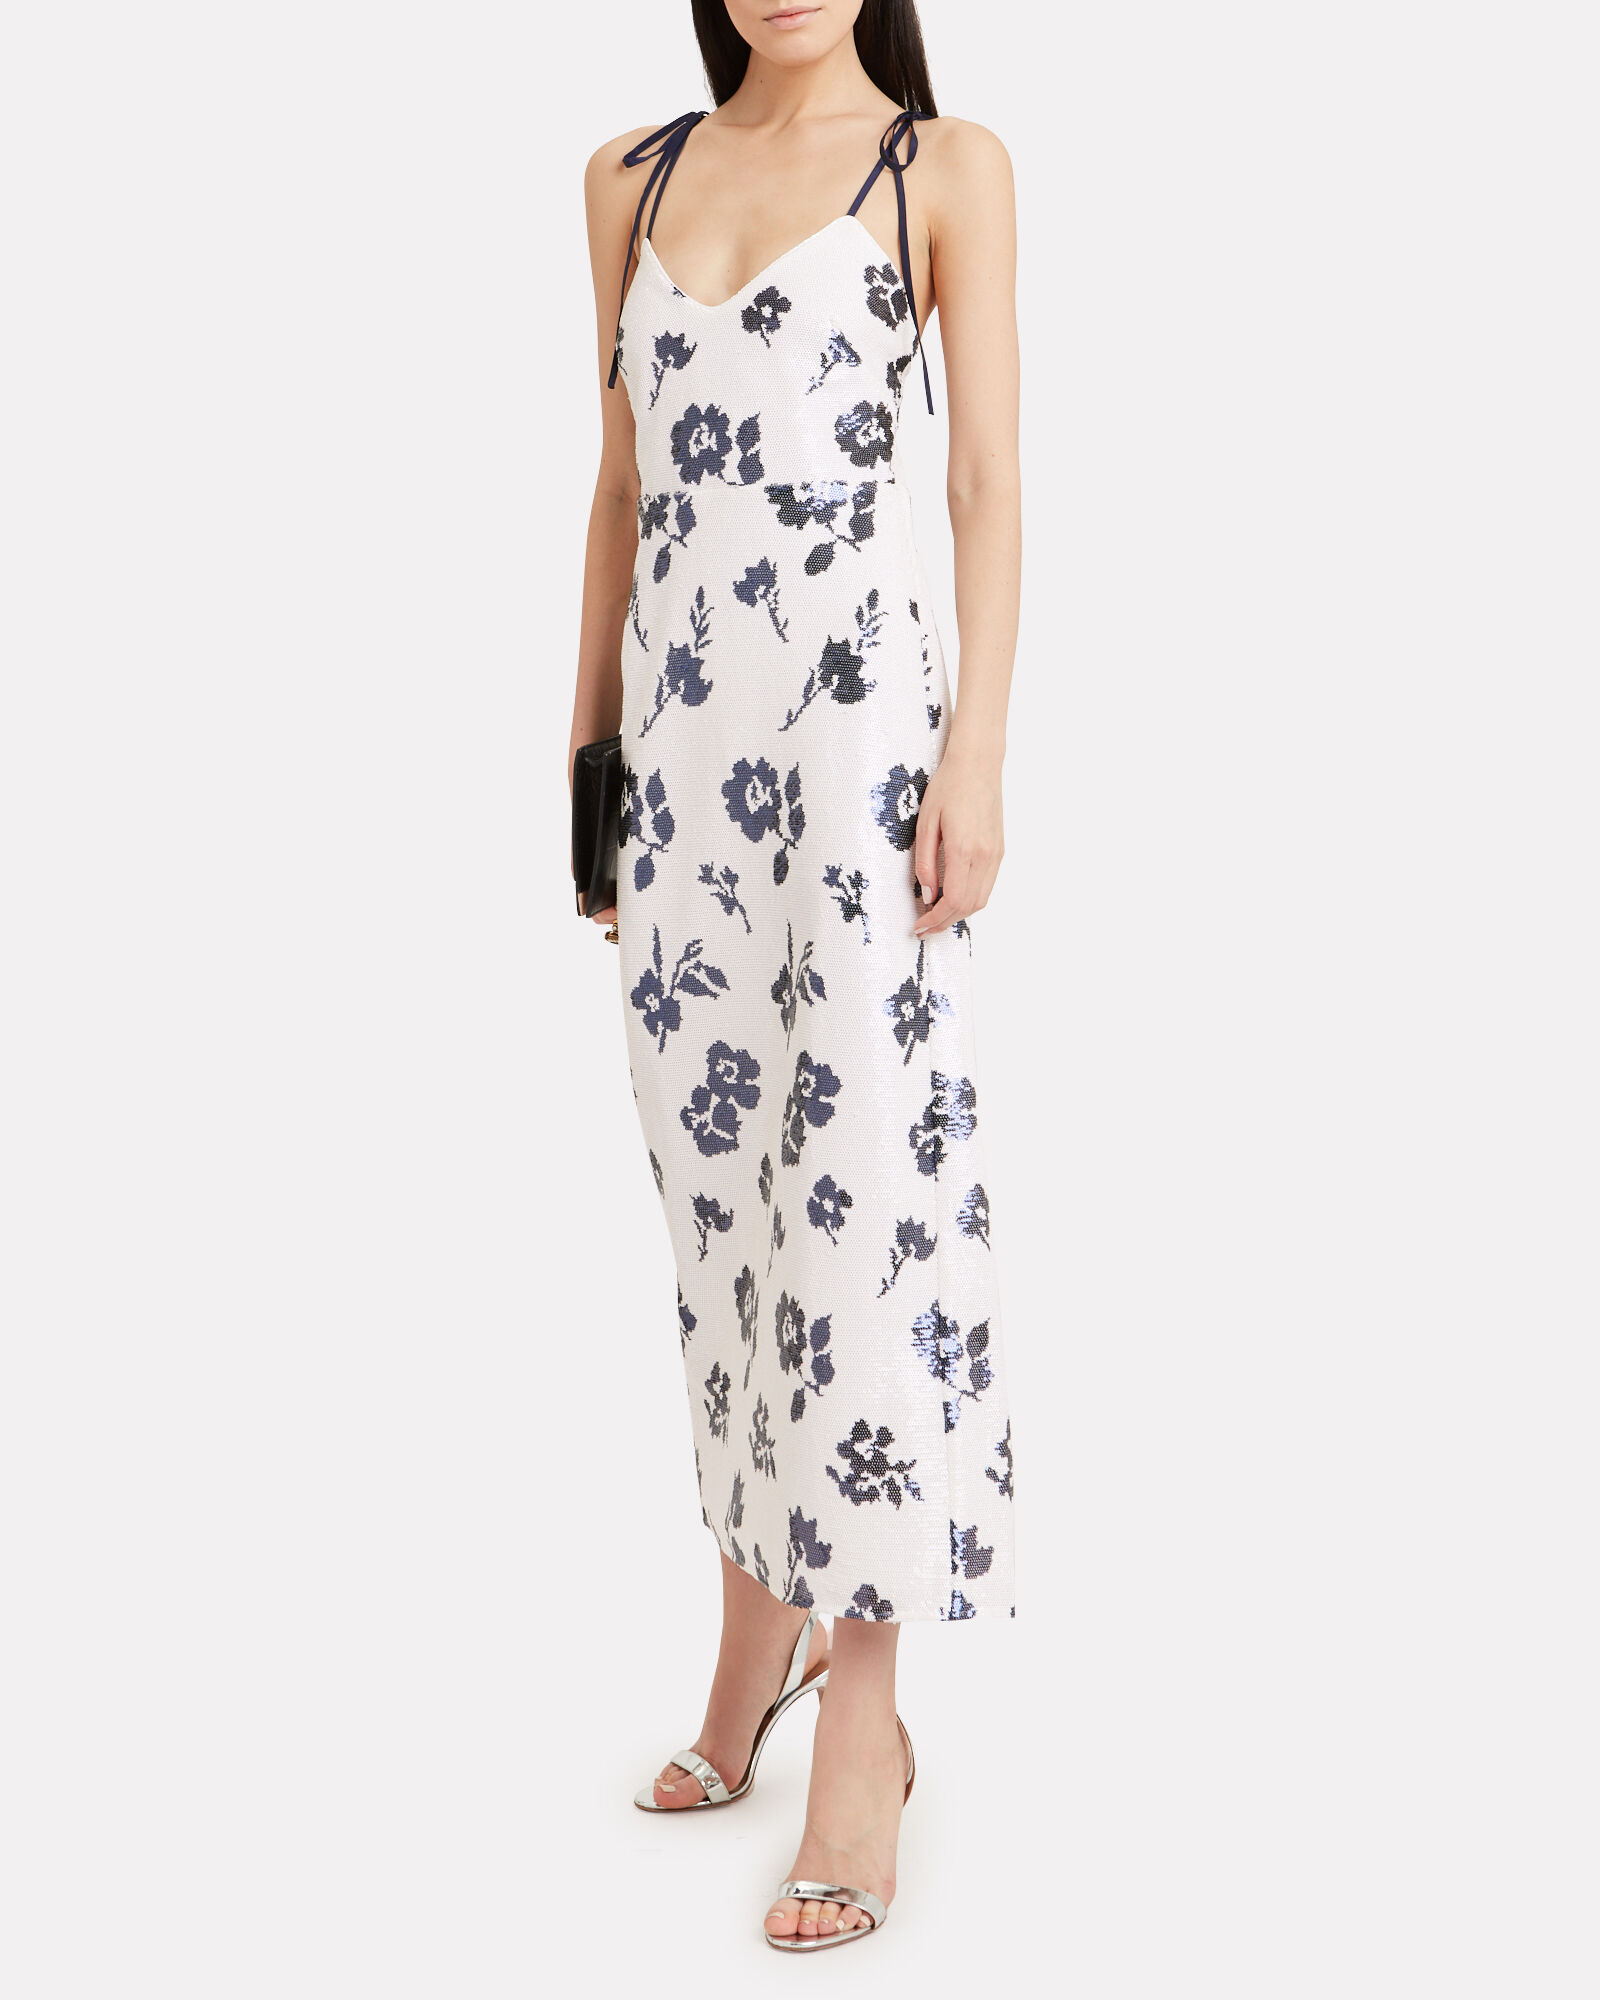 Sequin Floral Maxi Dress, WHITE/FLORAL, hi-res